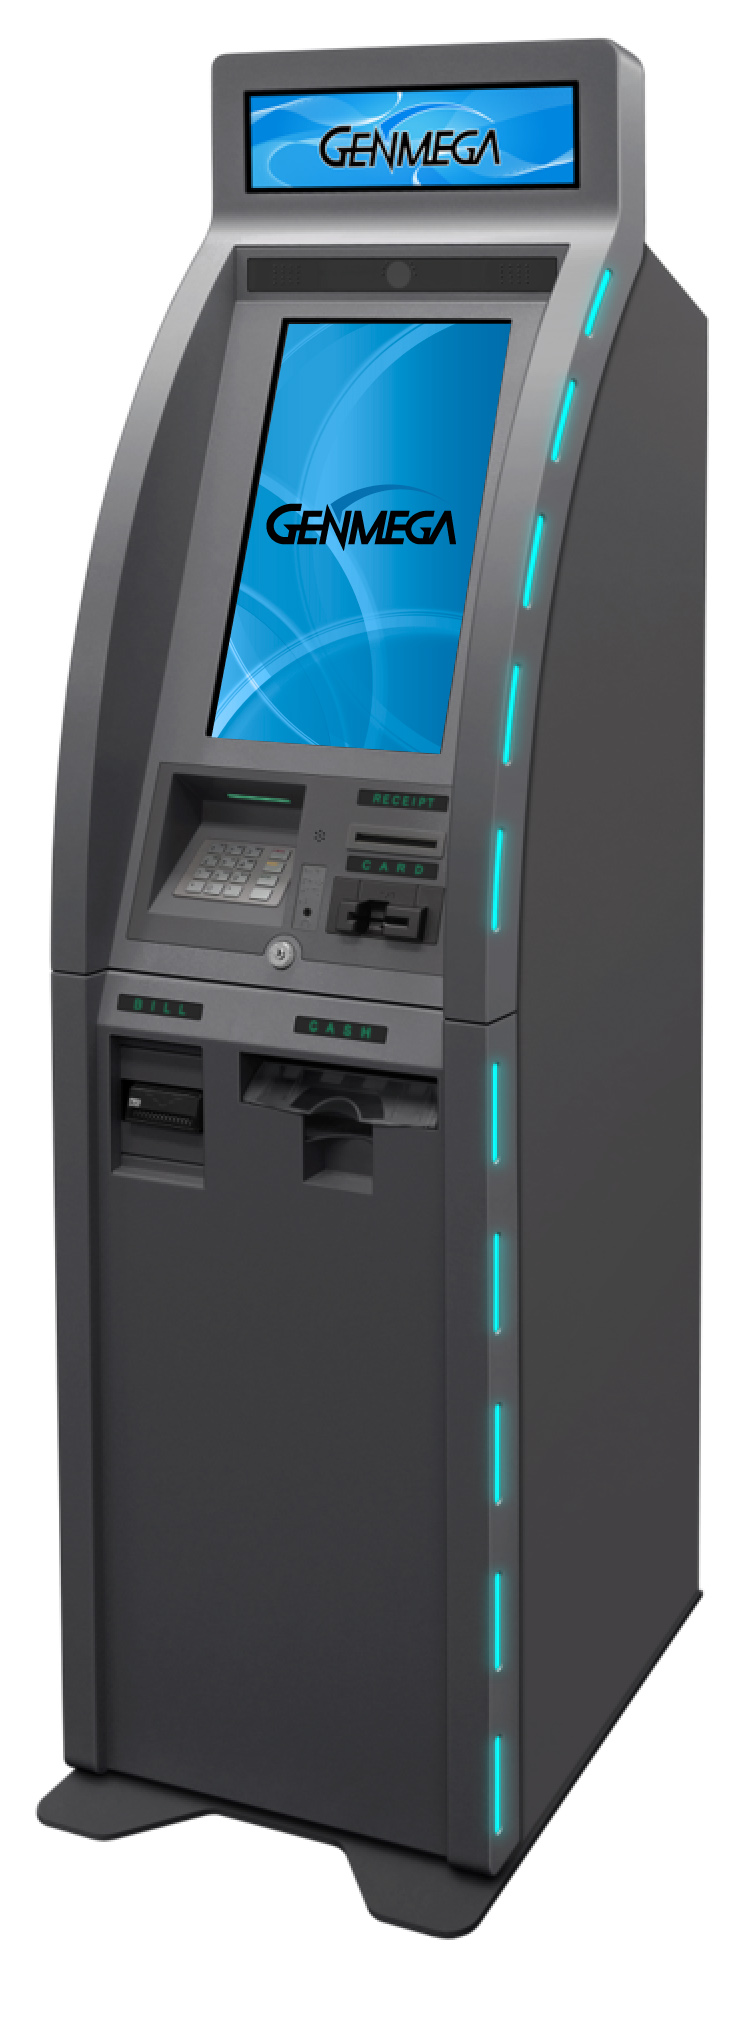 The Universal Kiosk 2 can be used for virtually any self-service payment need